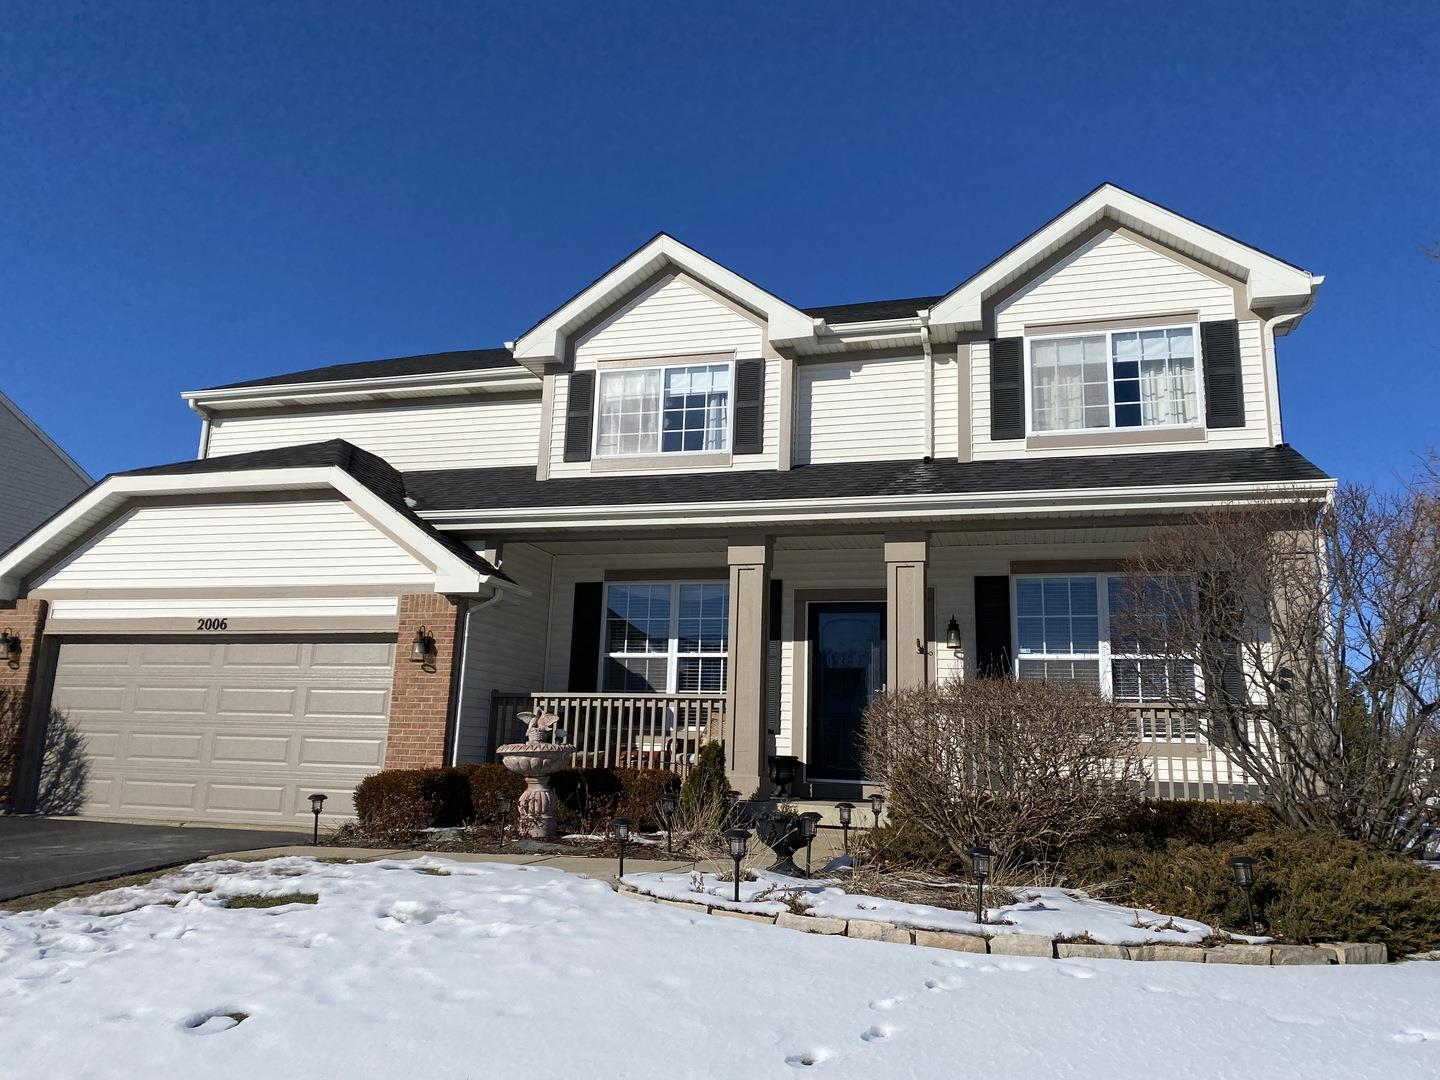 2006 Olde Mill Lane, McHenry, IL 60050 - #: 10978834